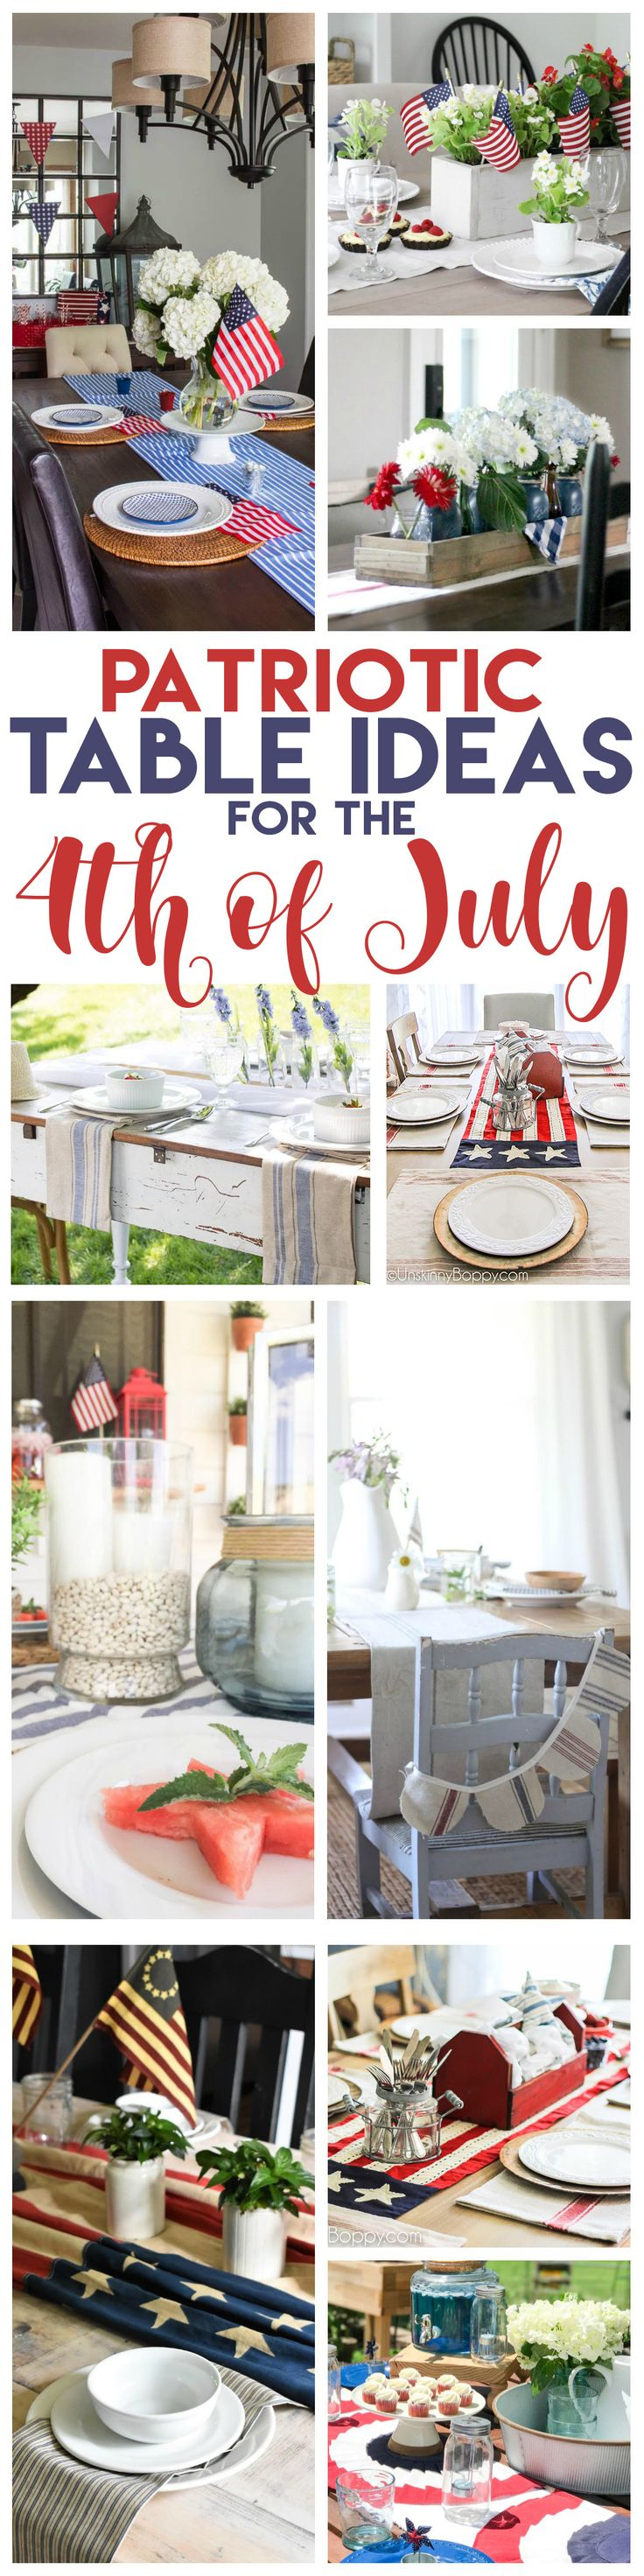 July 4th Decor with a muted pallet with a European twist. Adding that patriotic color scheme, but with Italian dessert and french bistro decorating.